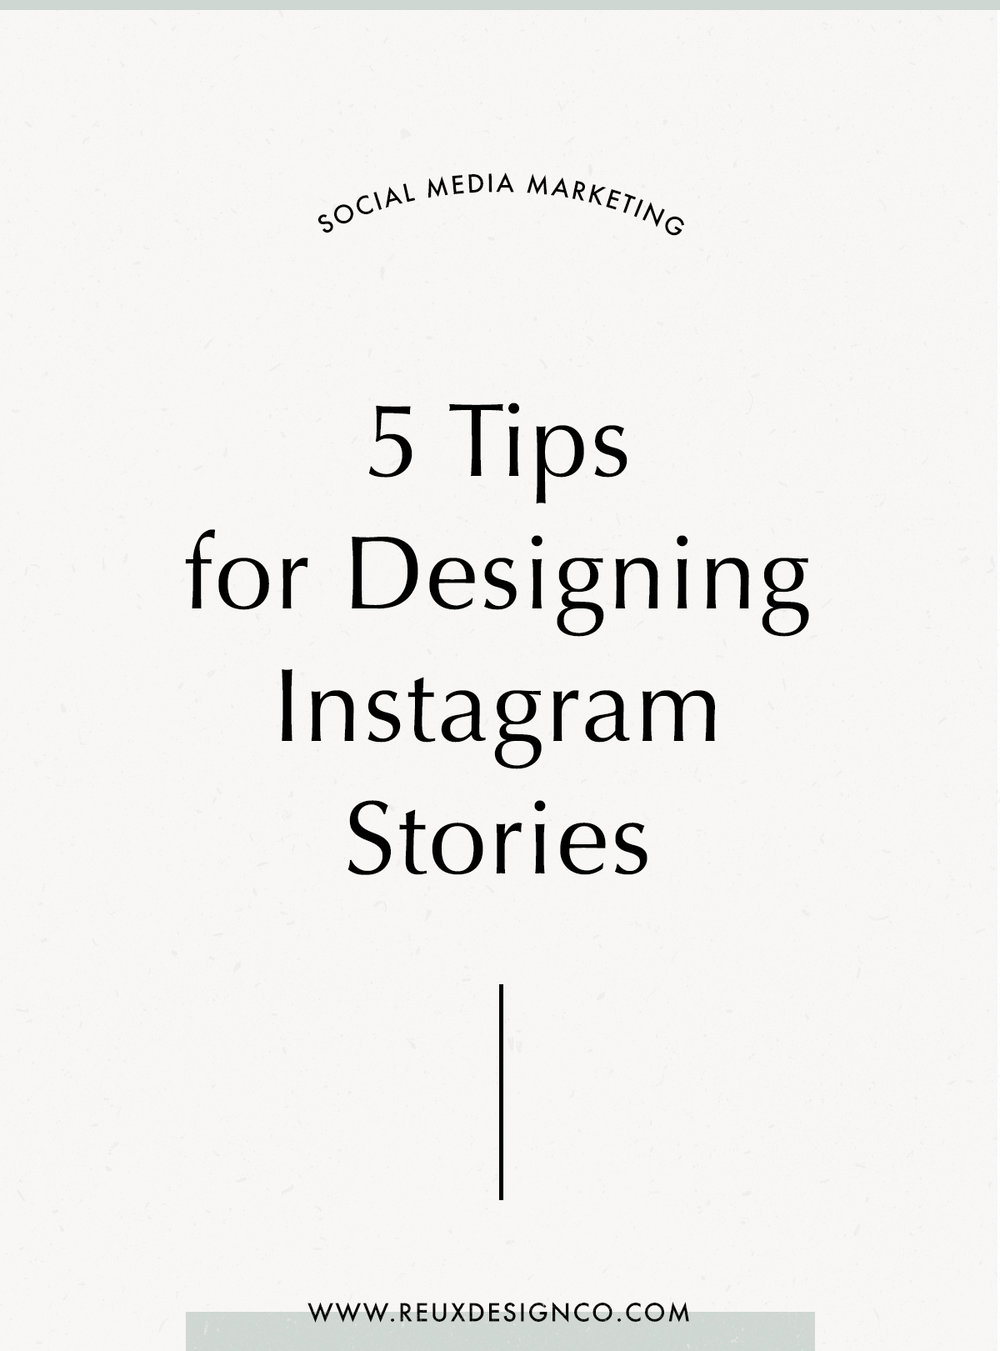 5 tips for designing instagram stories that connect and convert your audience | Holistic branding from Reux Design Co.